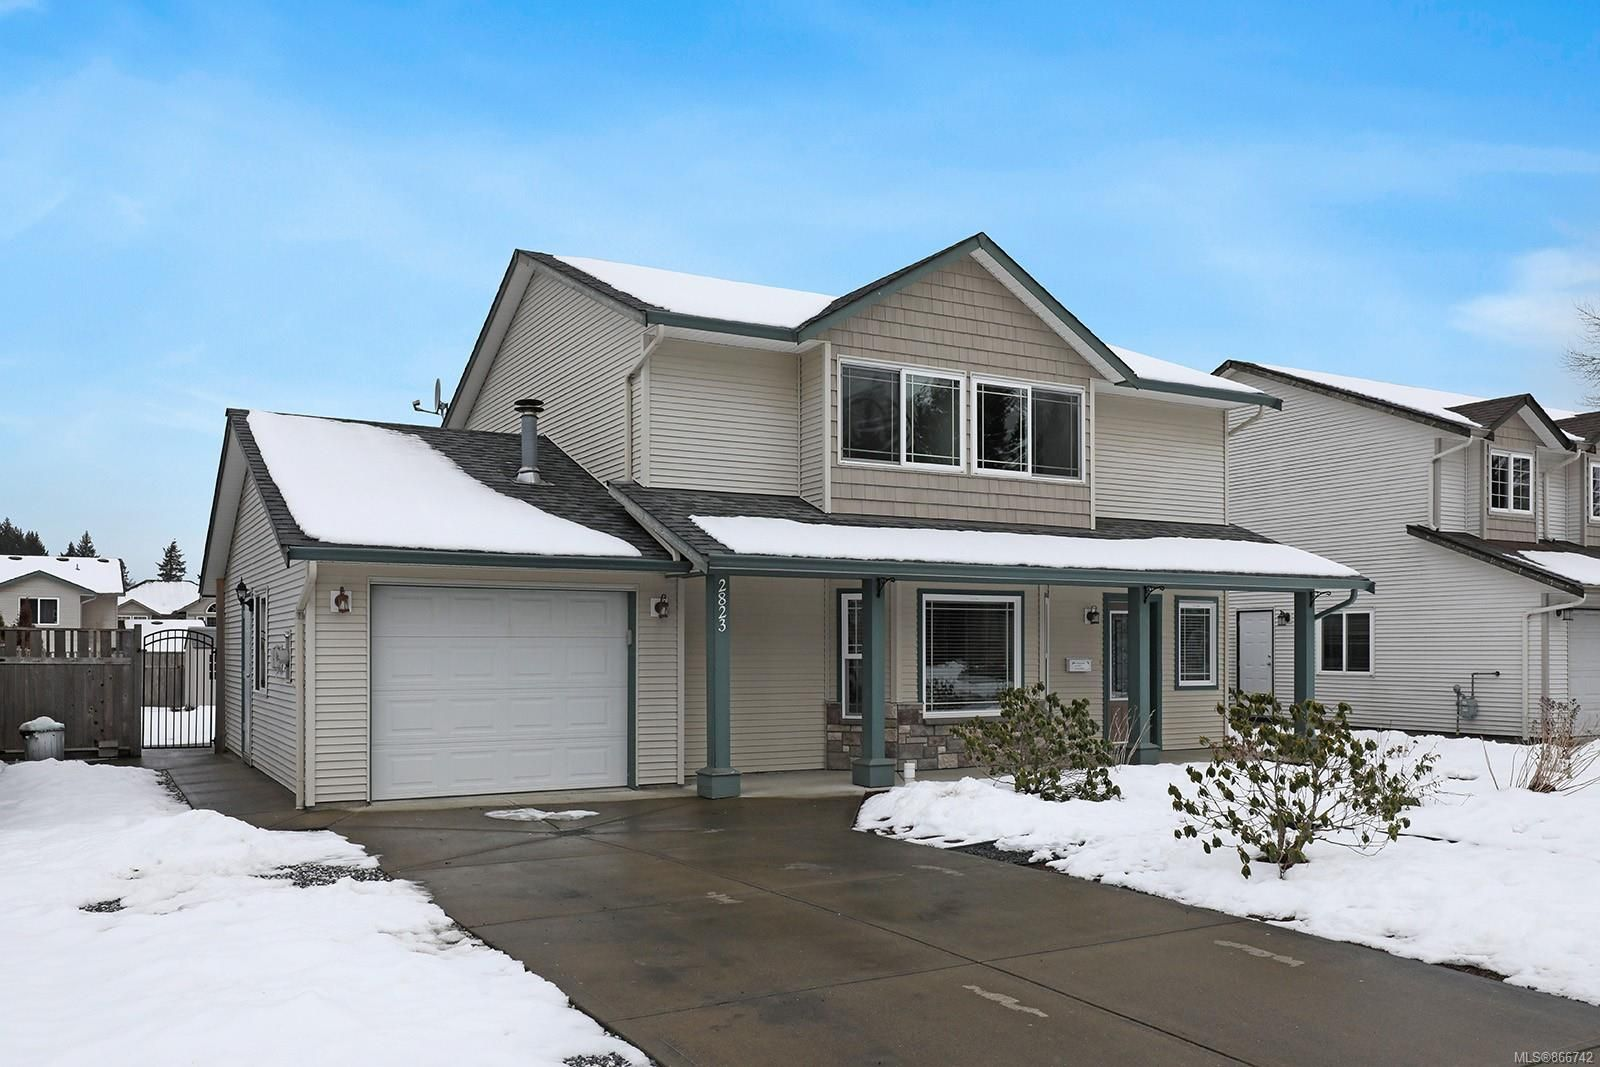 Main Photo: 2823 Piercy Ave in : CV Courtenay City House for sale (Comox Valley)  : MLS®# 866742